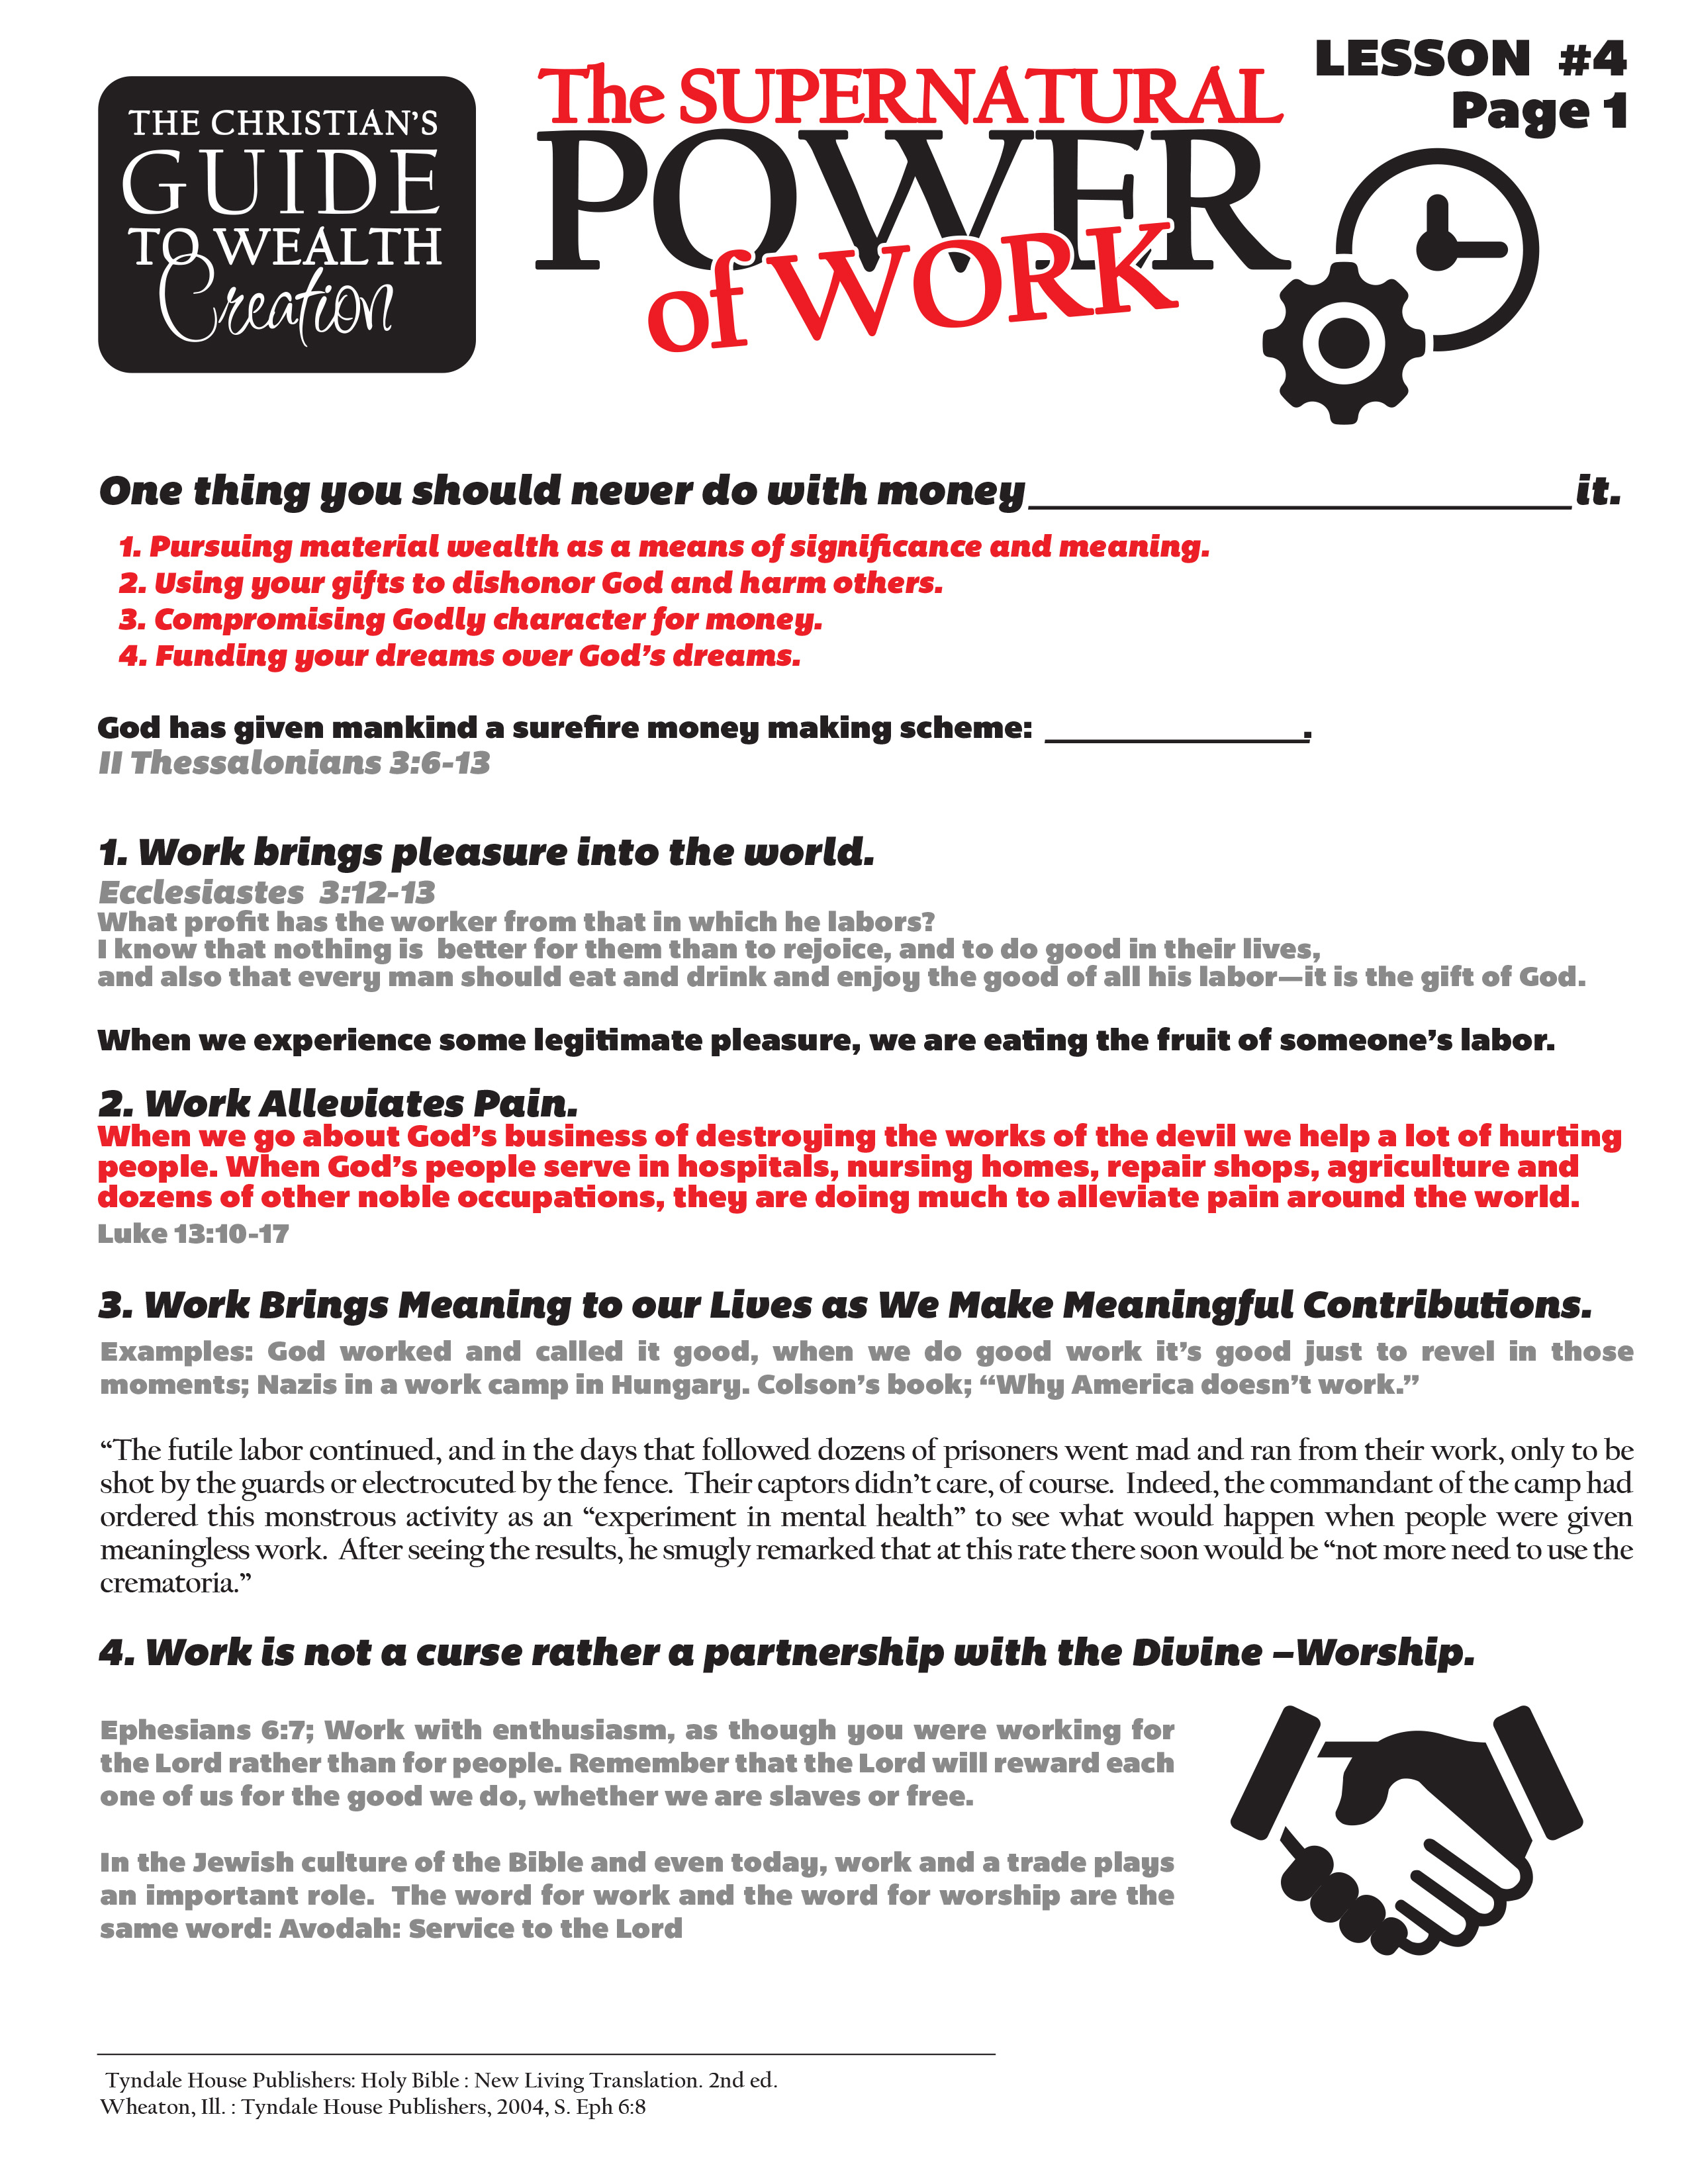 Lesson 4 The Supernatural Power of Work page 1.jpg